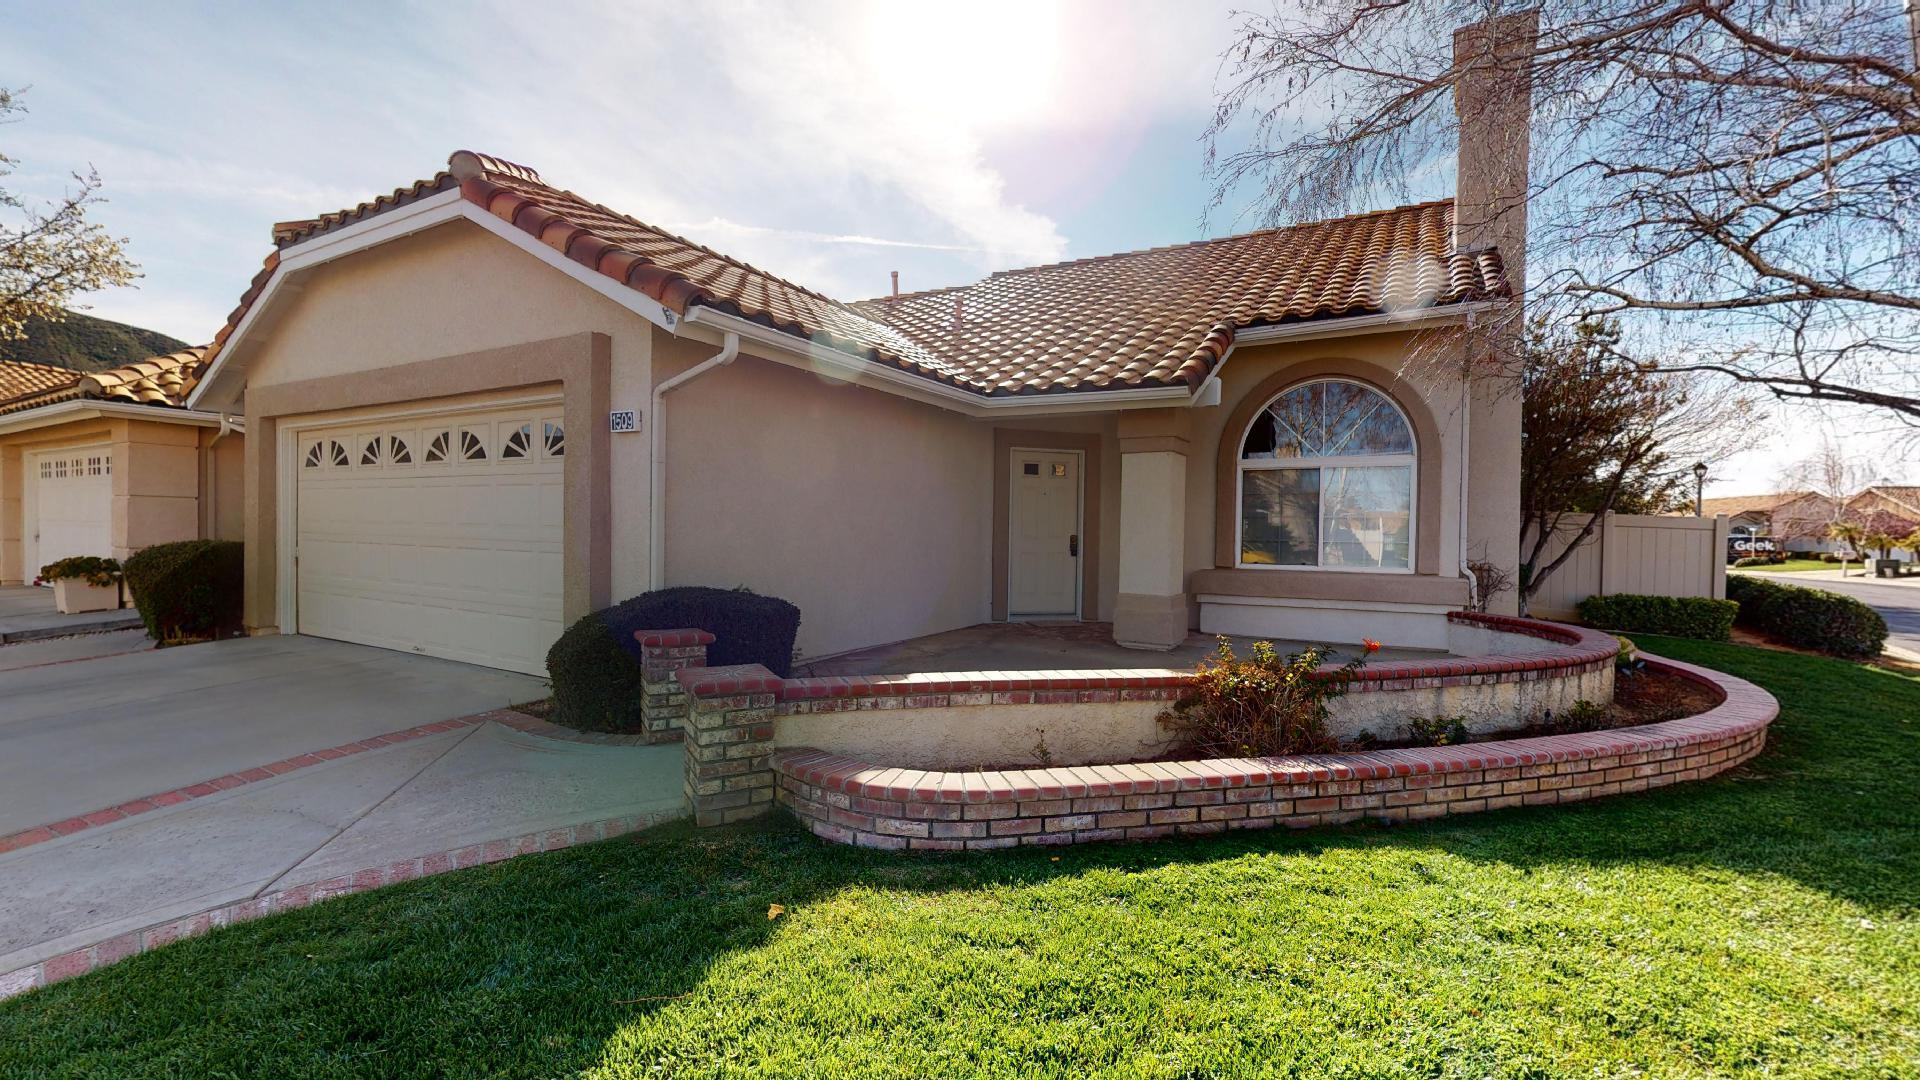 Photo of 1509 Woodlands Drive, Banning, CA 92220